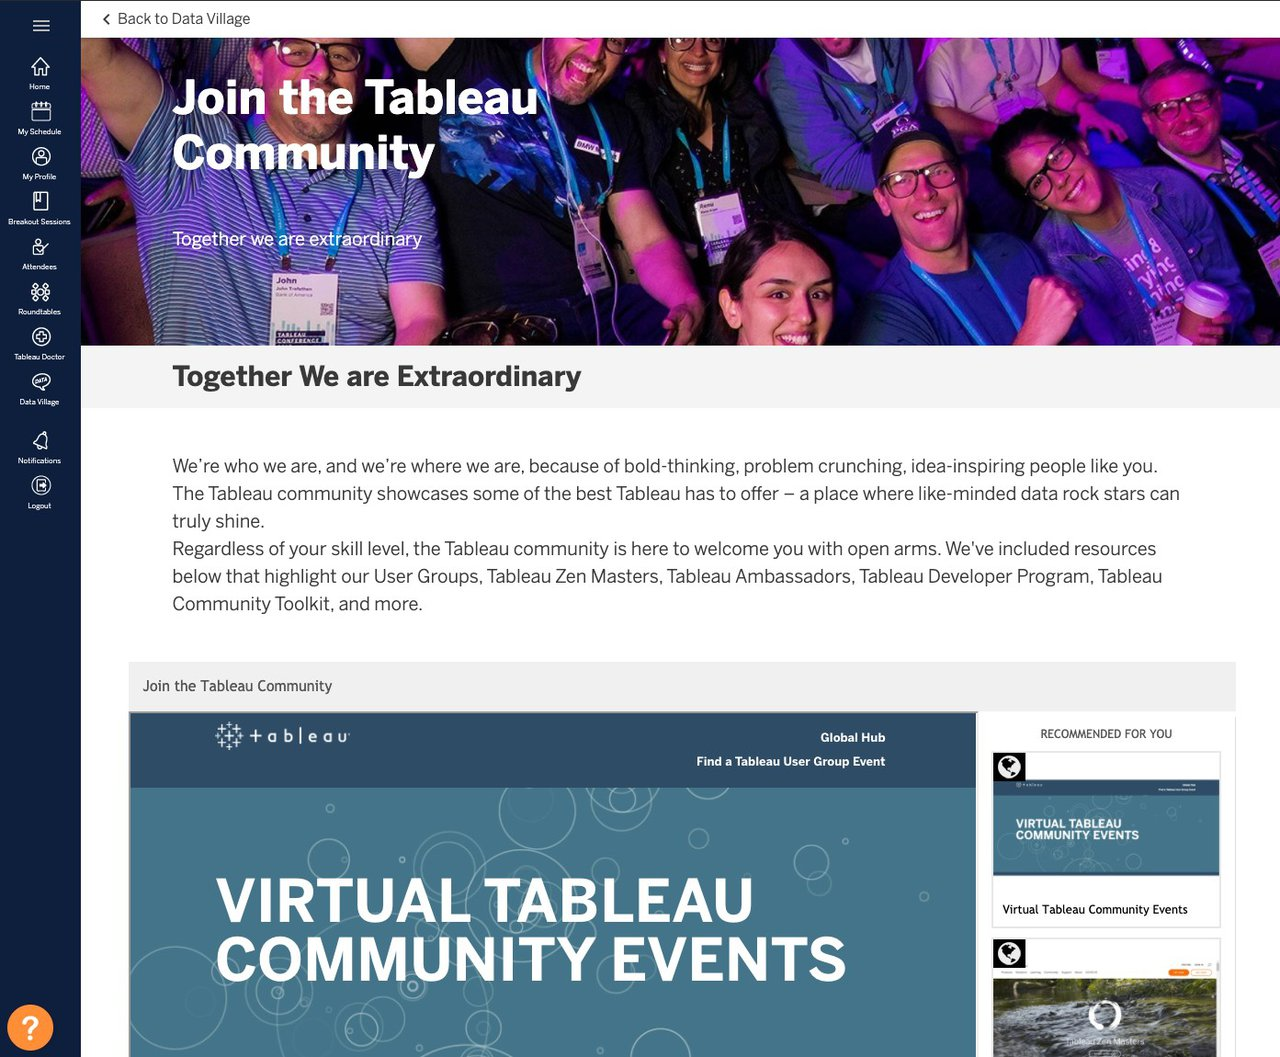 Tableau Live photo Copy of Data Village - Tableau Community.jpg